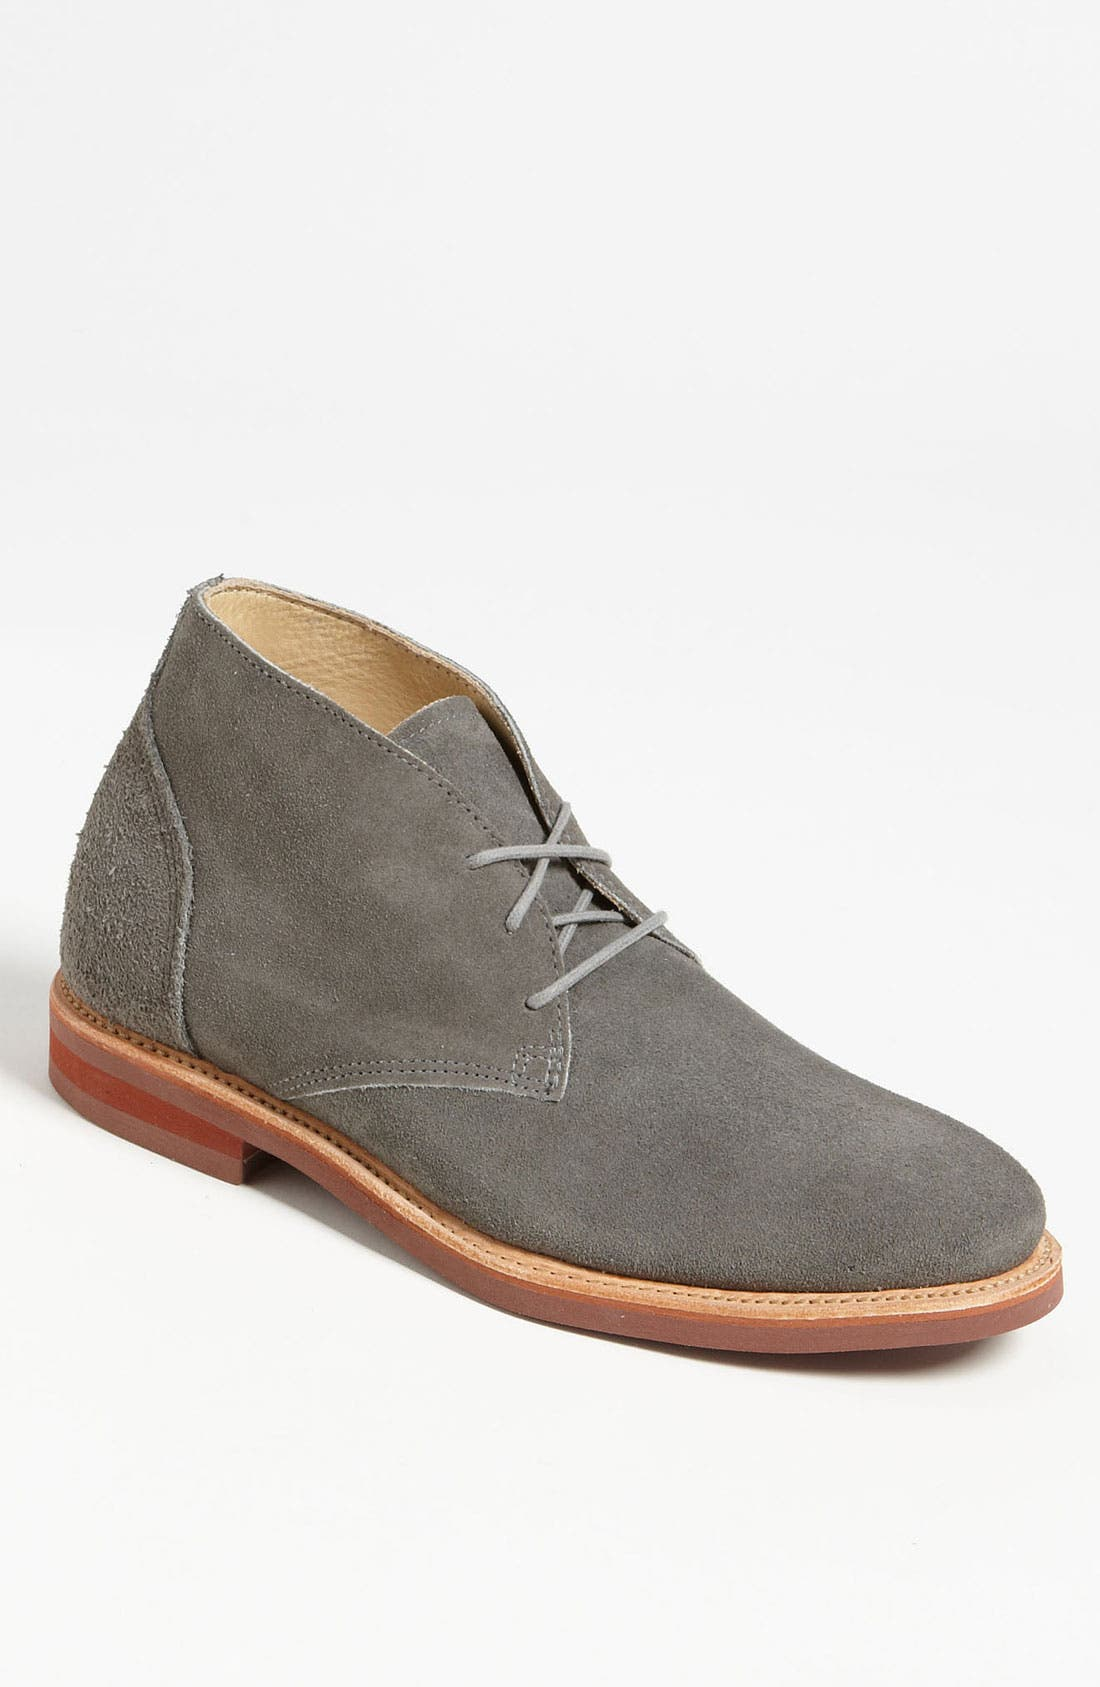 Alternate Image 1 Selected - Walk-Over 'Wilfred' Chukka Boot